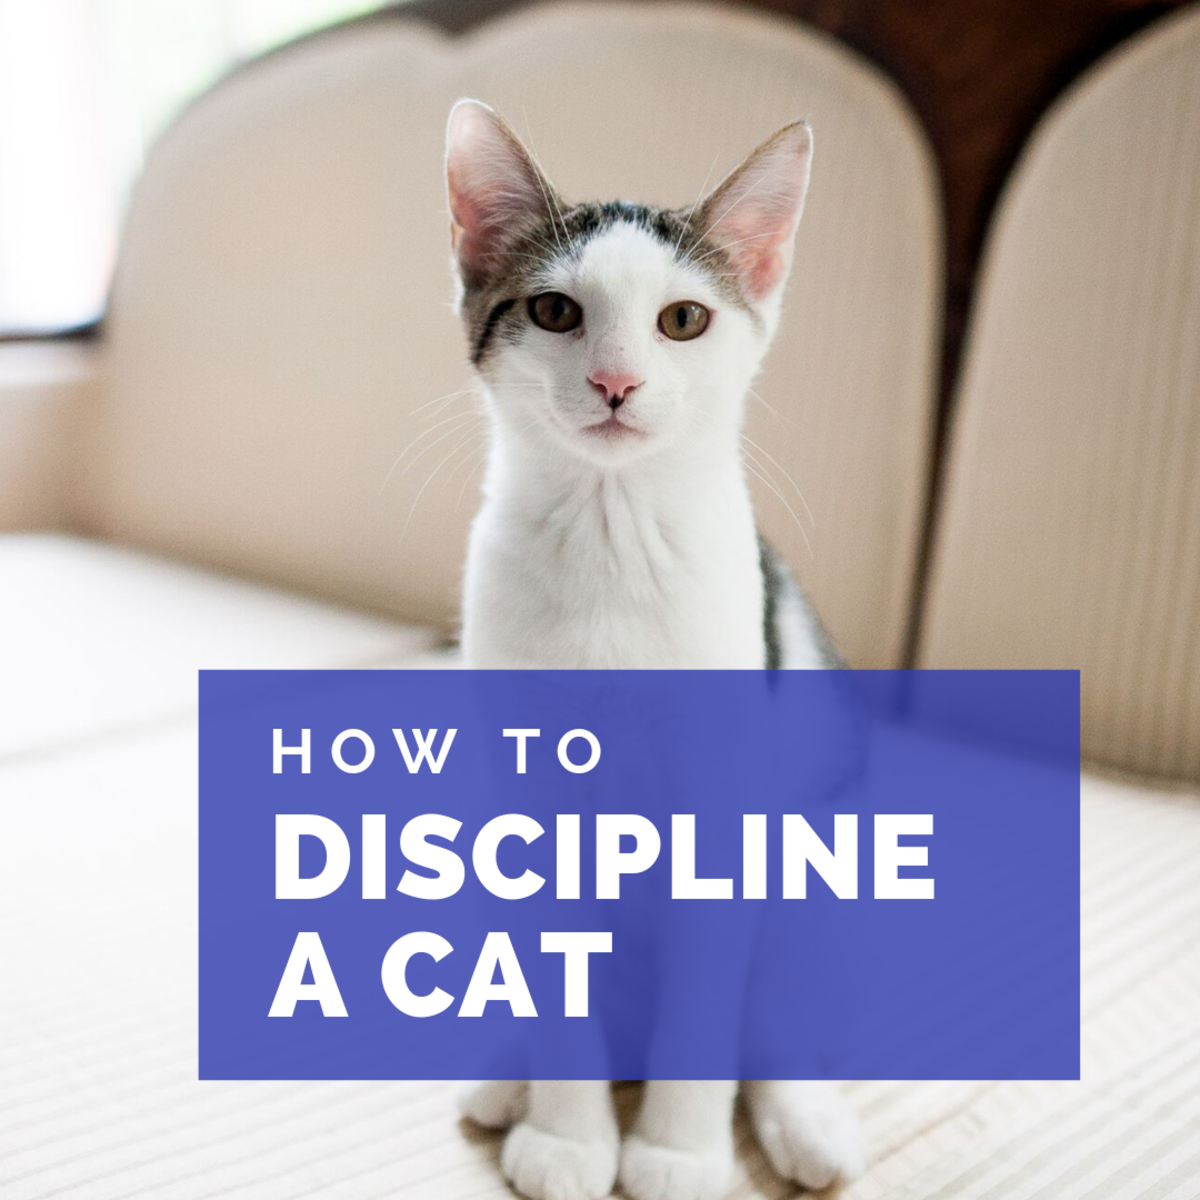 What Is the Best Way to Discipline a Cat? Tips From a Cat Parent